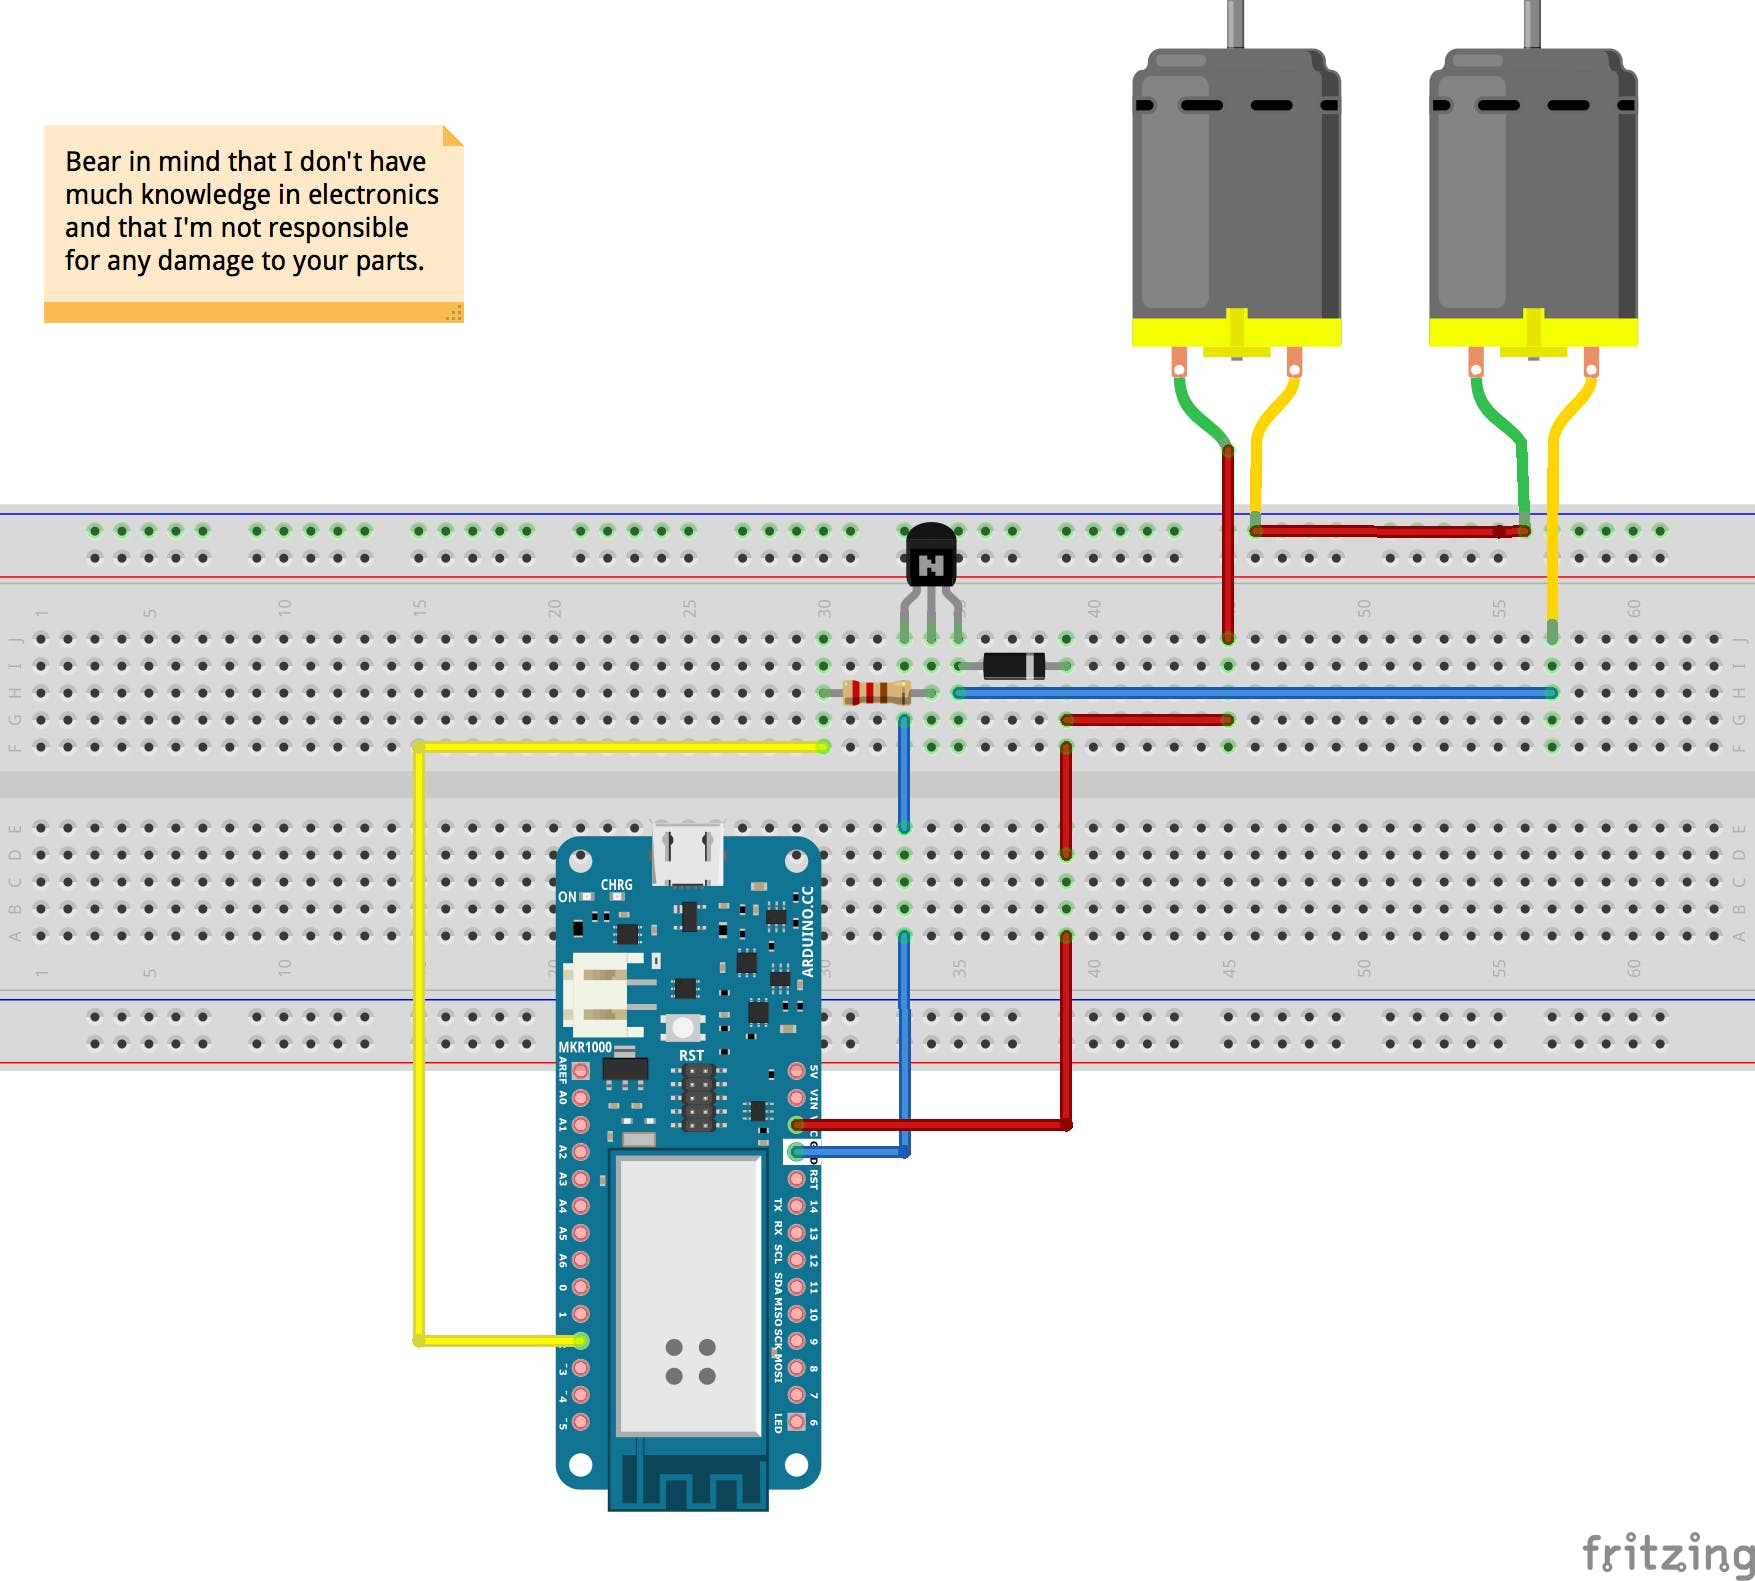 This is basically the same circuit as the one found in the Adafruit website